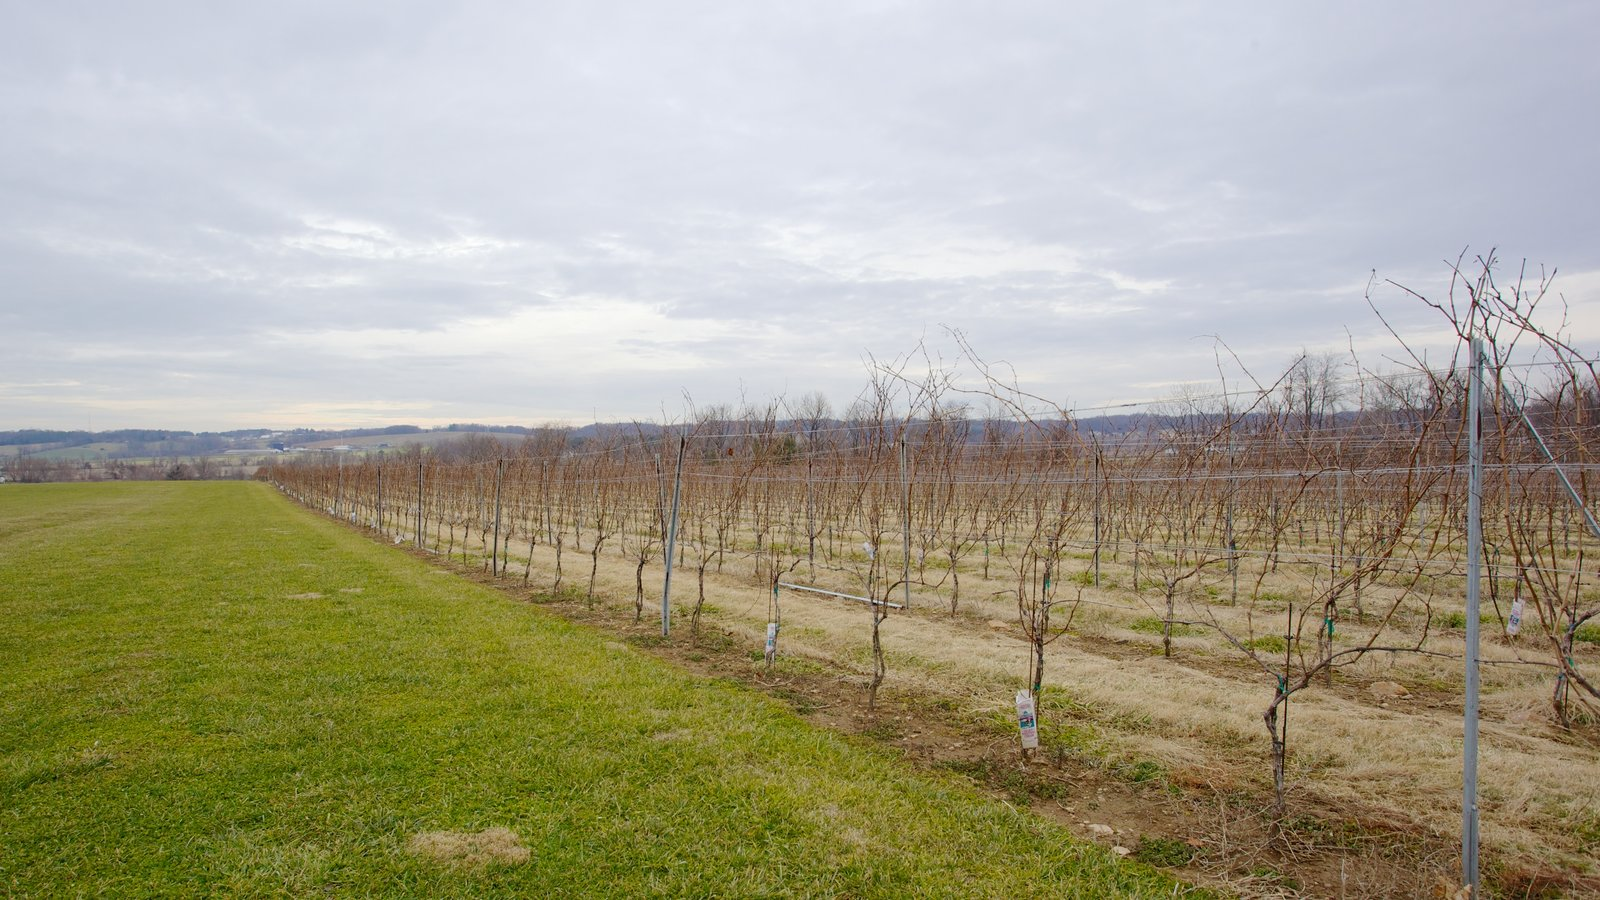 Boordy Vineyards which includes farmland and landscape views